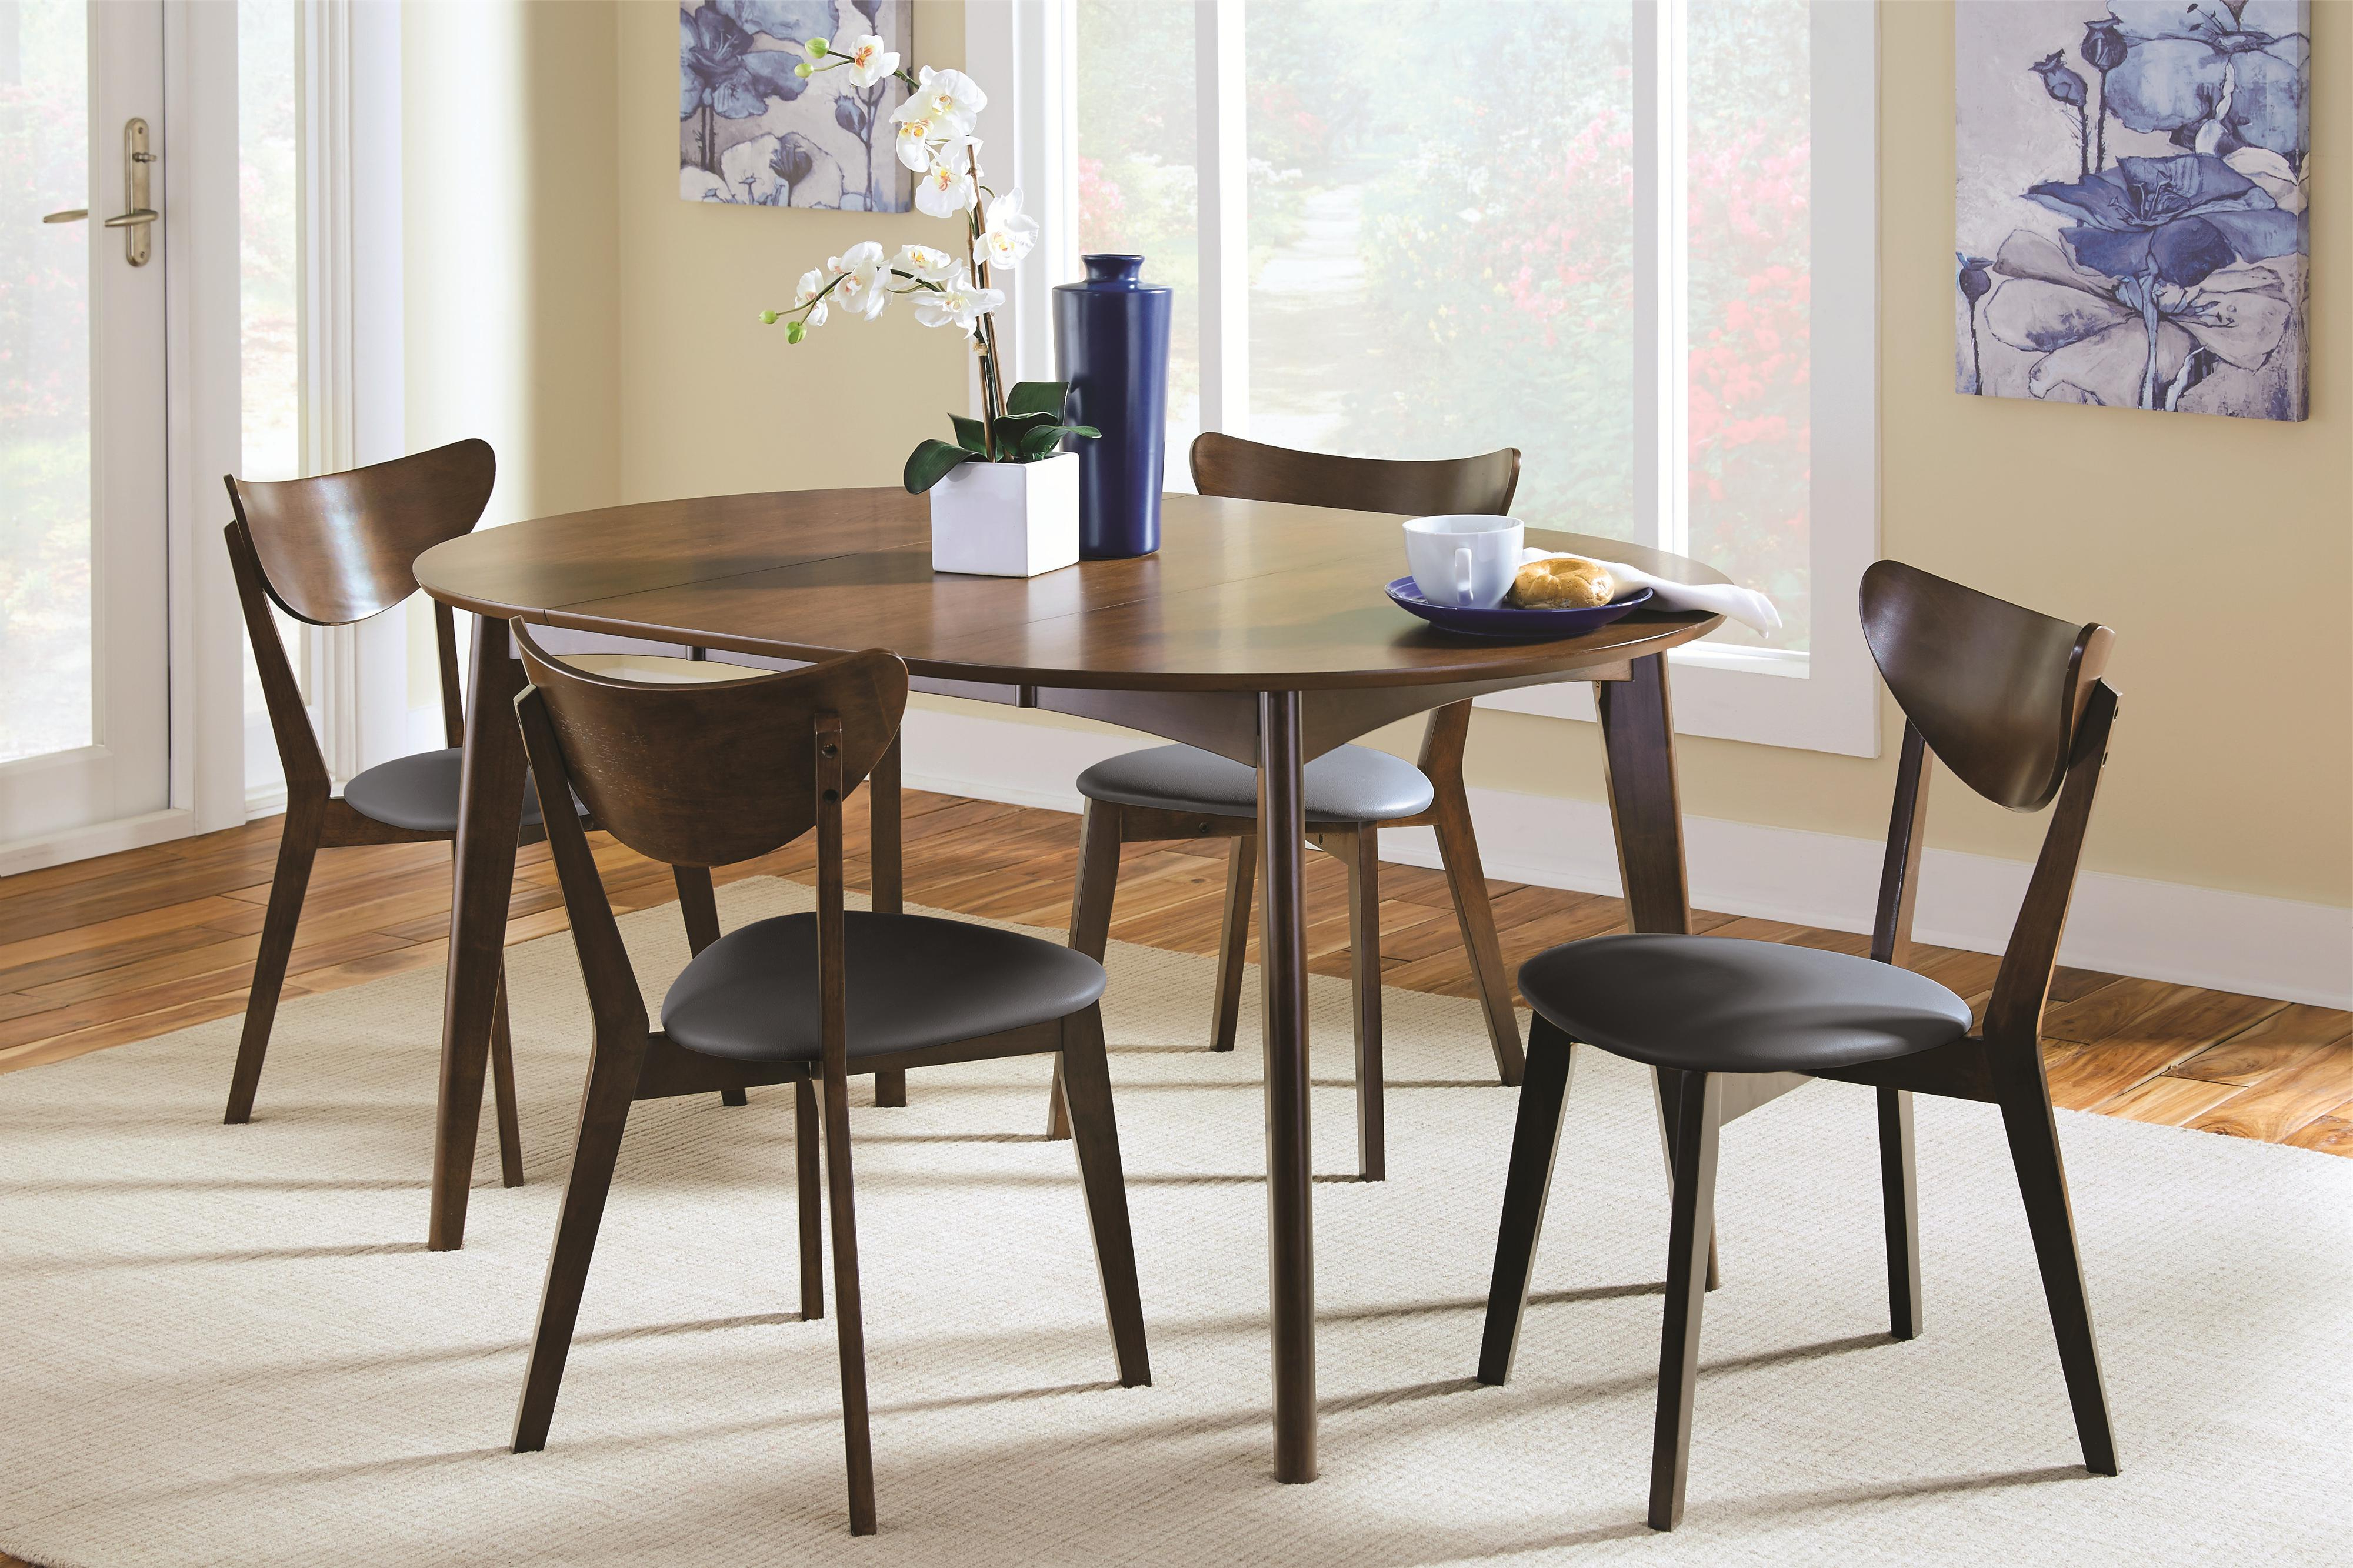 Coaster Malone Mid Century Modern 5 Piece Solid Wood Dining Set Throughout Most Recently Released 5 Piece Dining Sets (View 9 of 25)